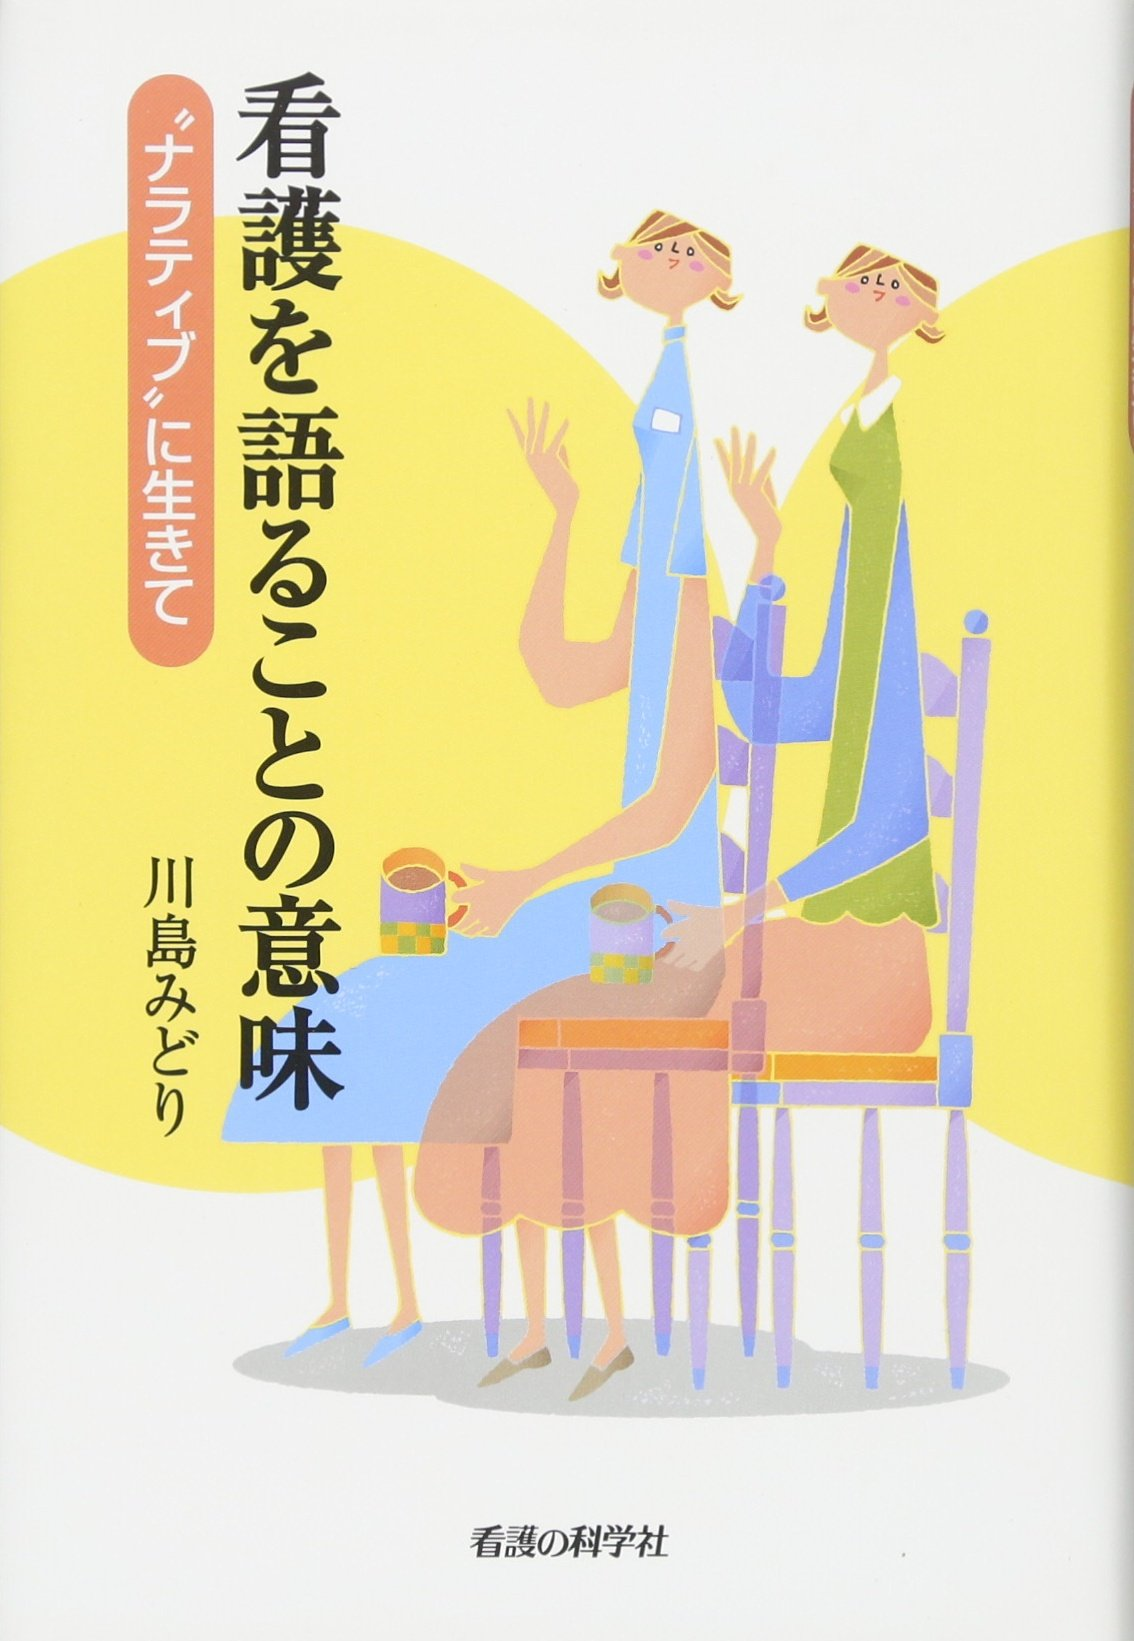 """Read Online To live in the """"narrative"""" - ??meaning of things to talk about nursing (2007) ISBN: 4878040181 [Japanese Import] ebook"""